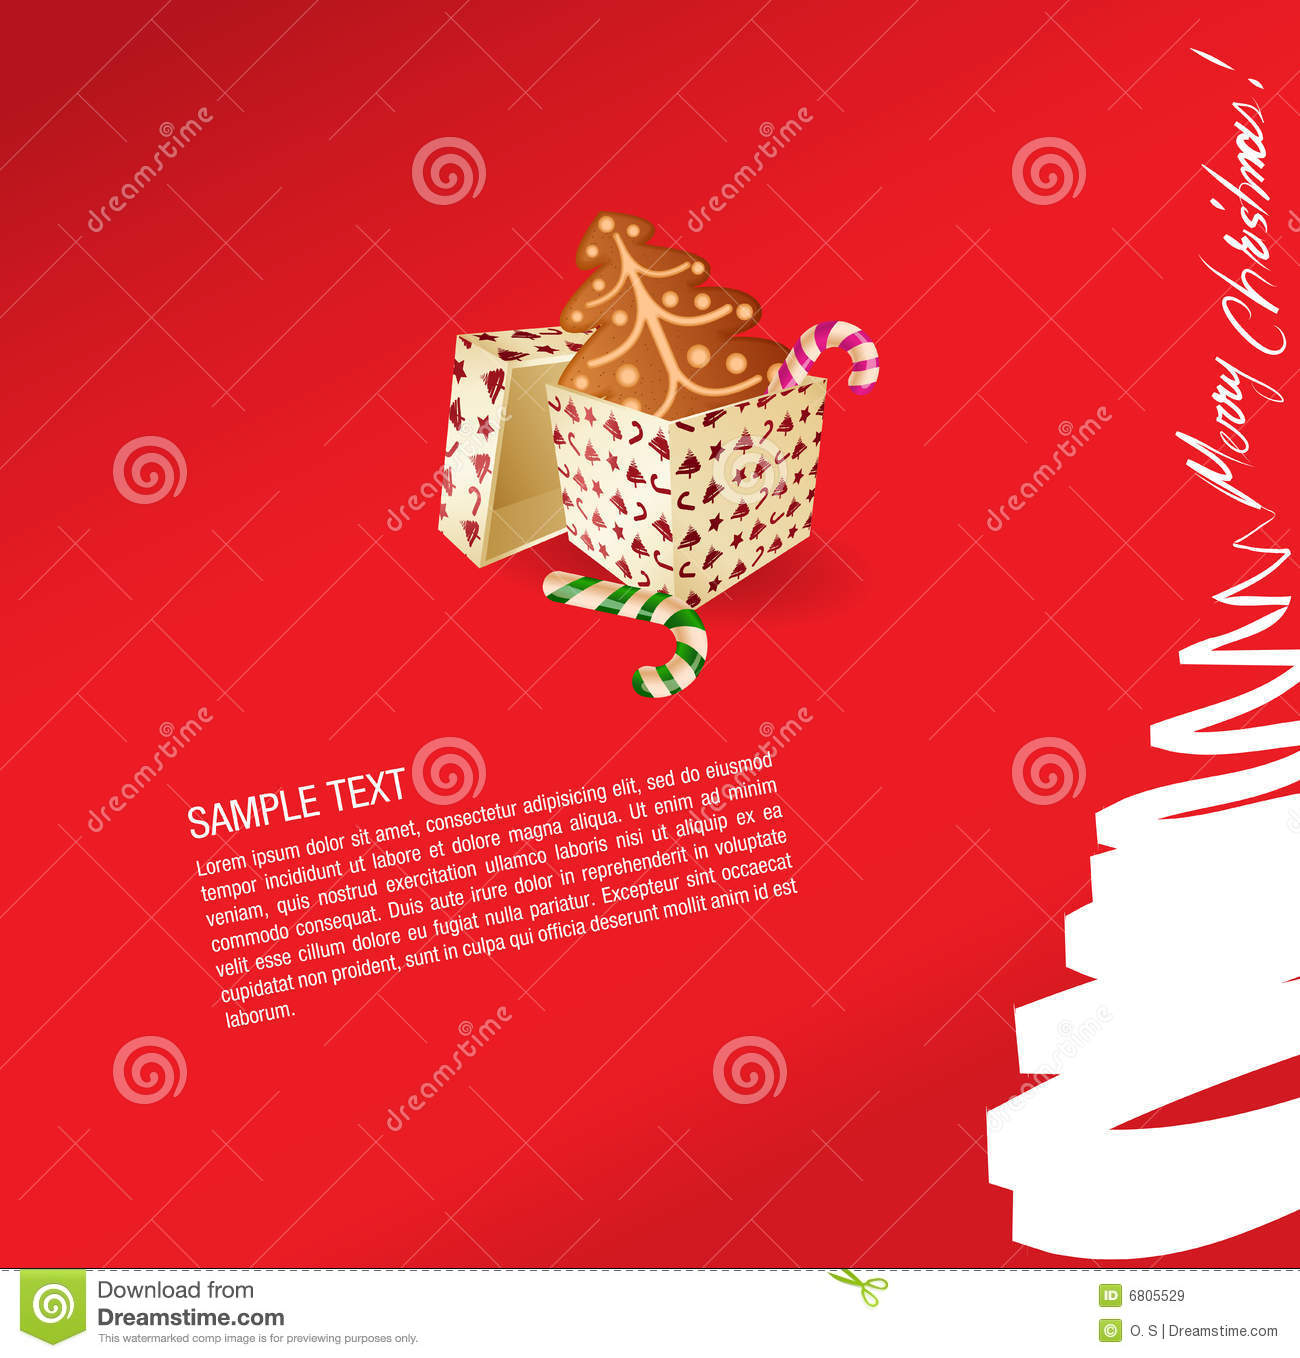 Christmas greeting card - present, sweet and ginge